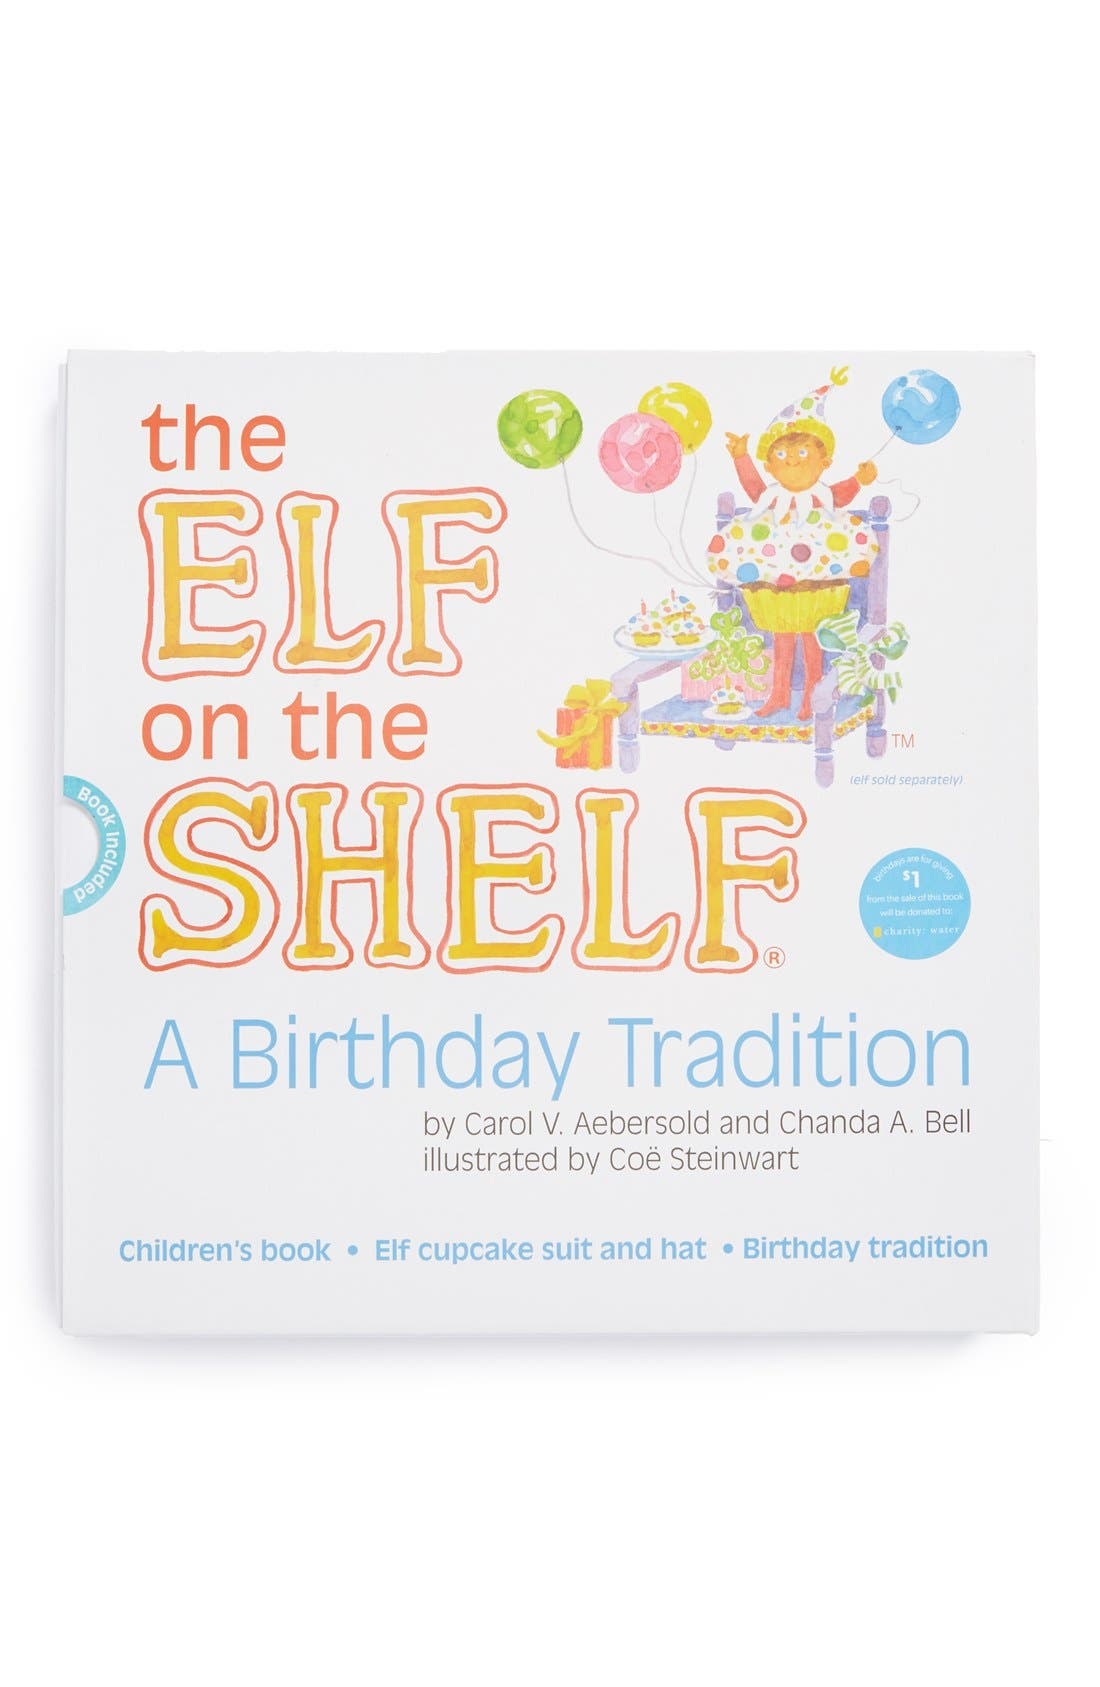 Alternate Image 1 Selected - Elf on the Shelf® 'A Birthday Tradition' Book and Elf Cupcake Suit